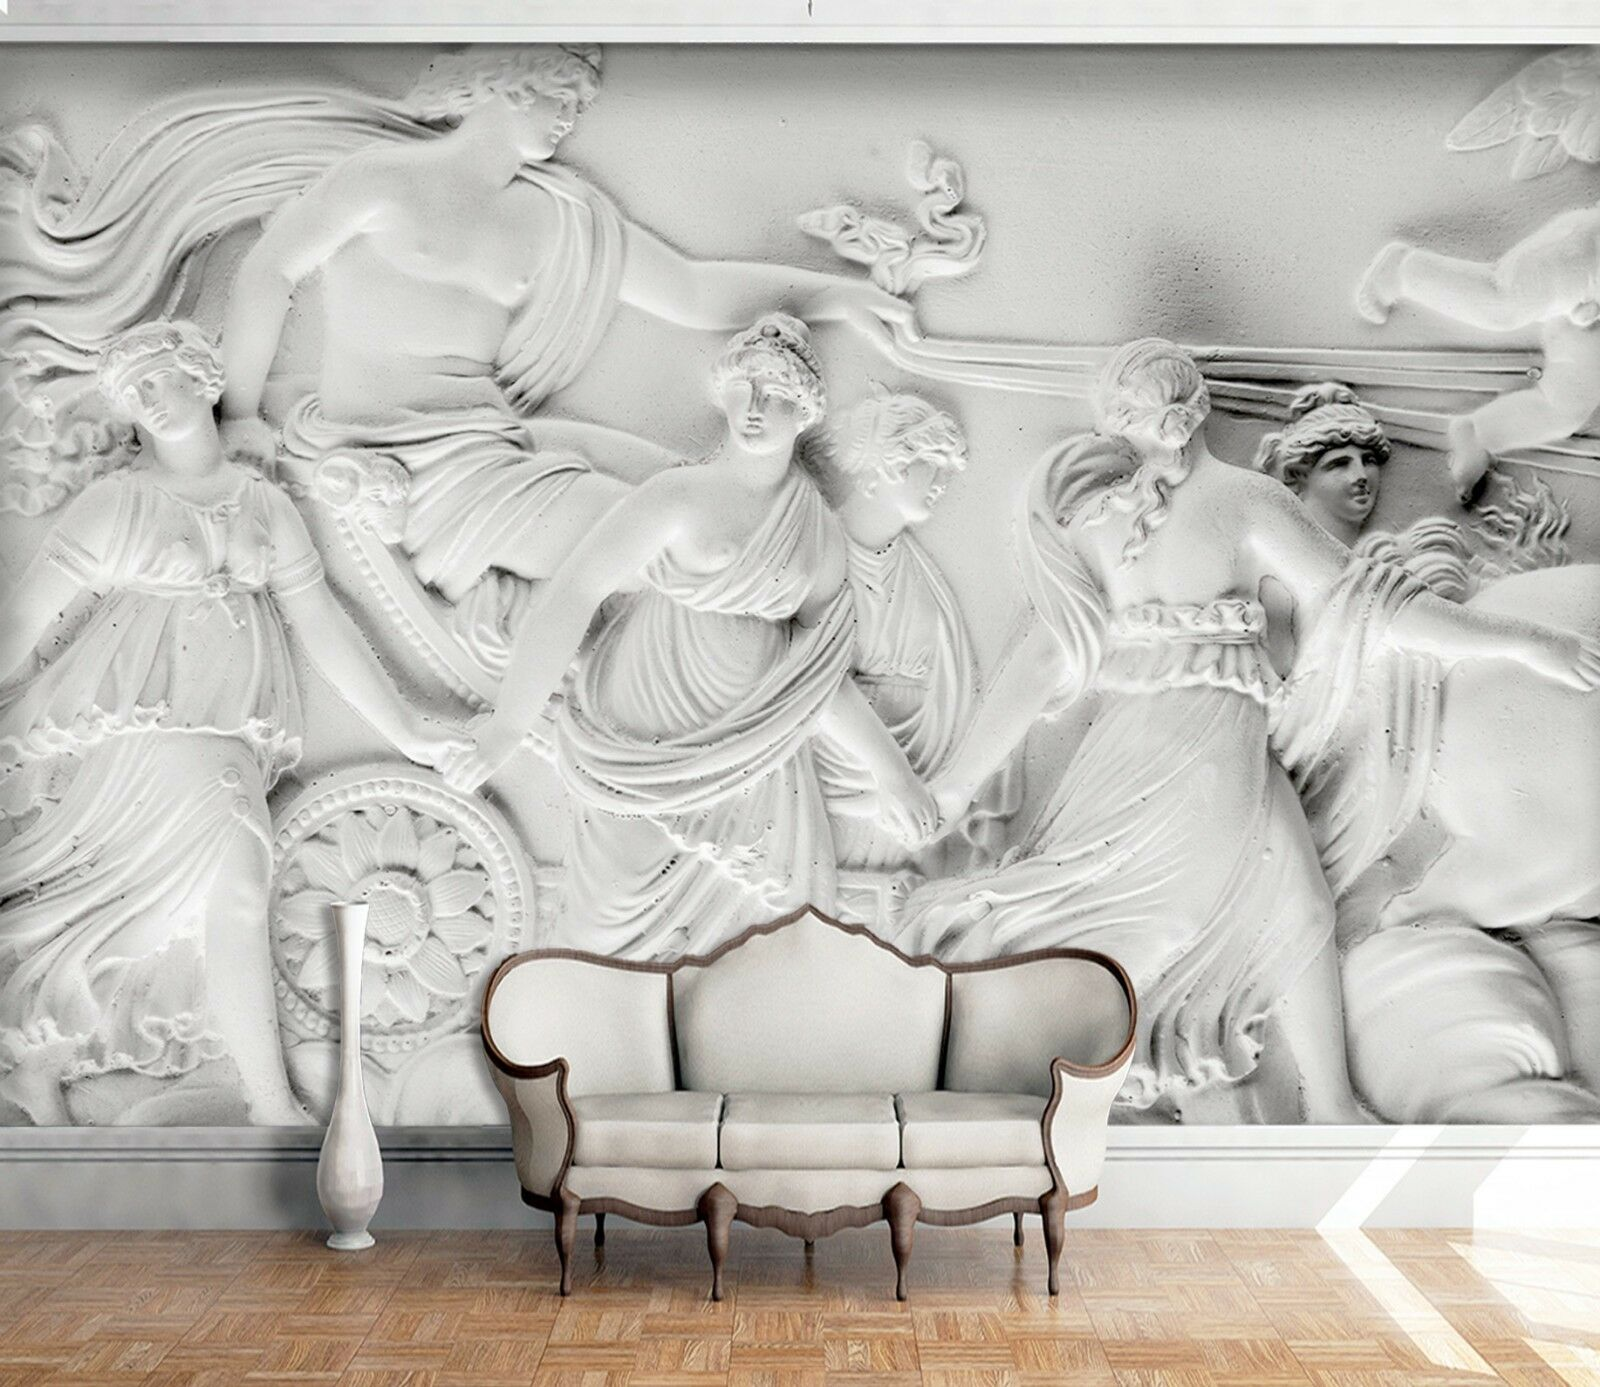 3D Weiß Female Relief 4 Wall Paper wall Print Decal Wall Deco Indoor wall Mural